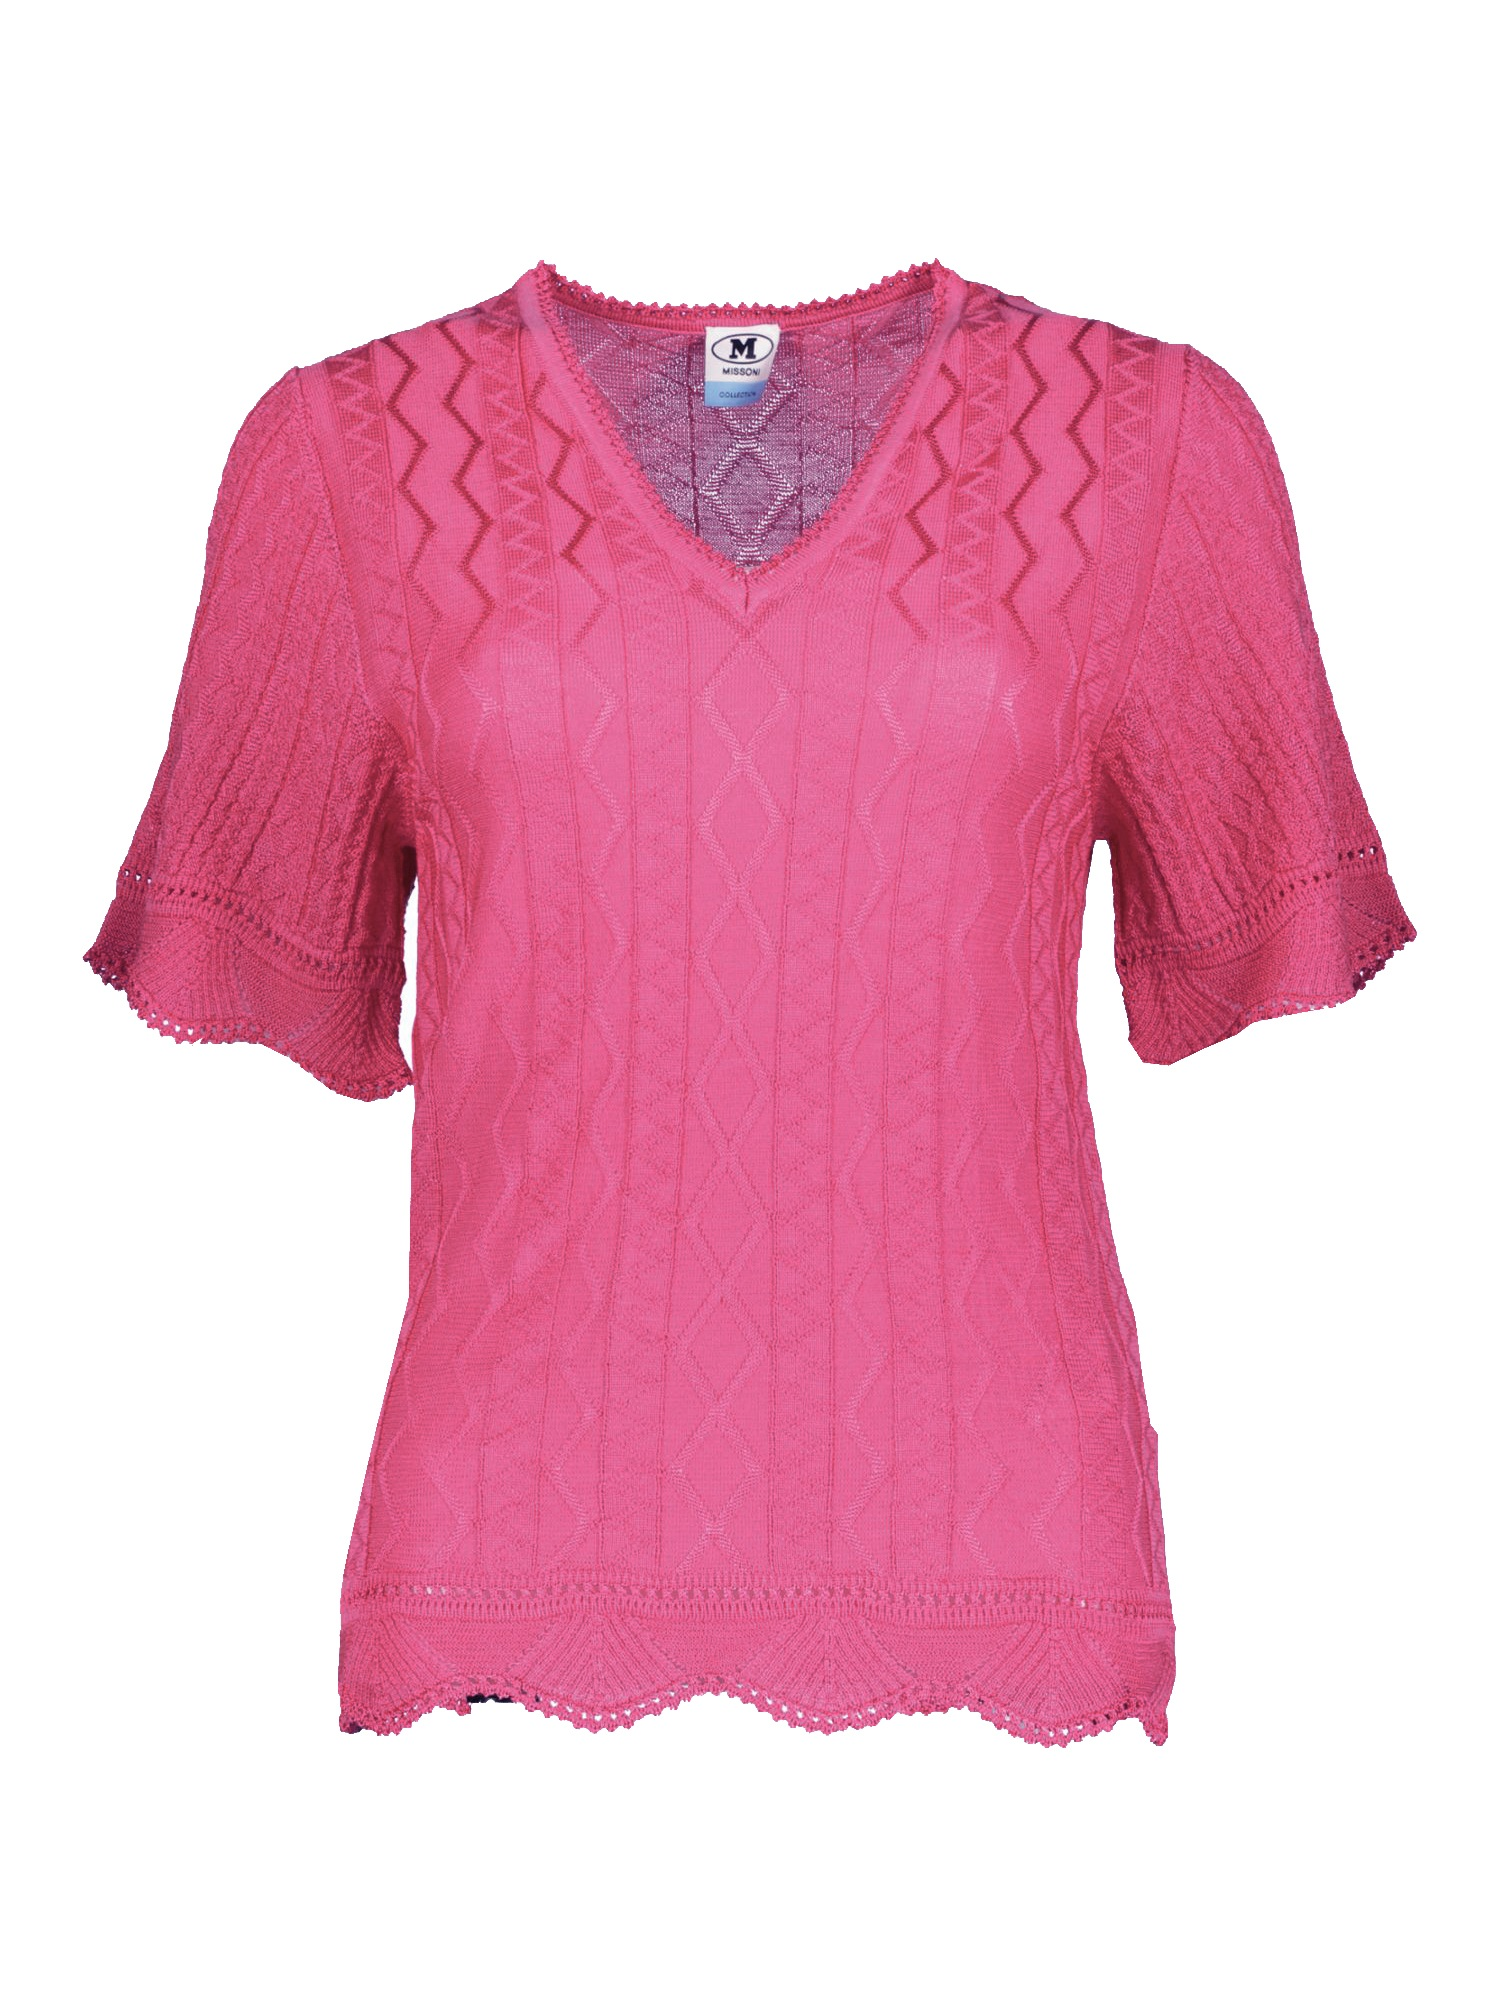 top pink _Front